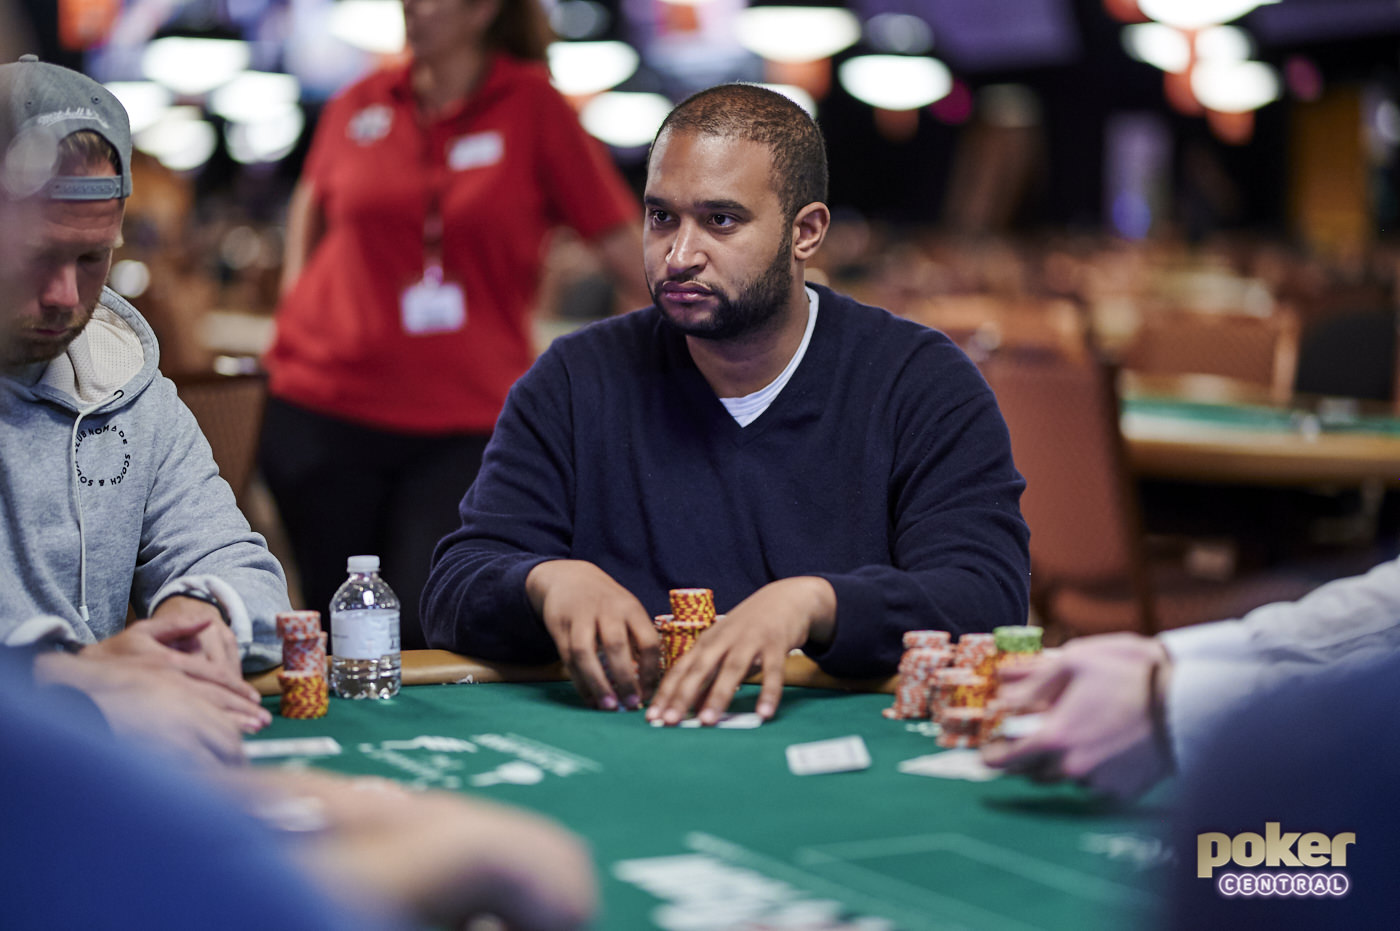 Ismael Bojang has 10 cashes and his first WSOP gold bracelet in 2019 to put himself in contention for Player of the Year.